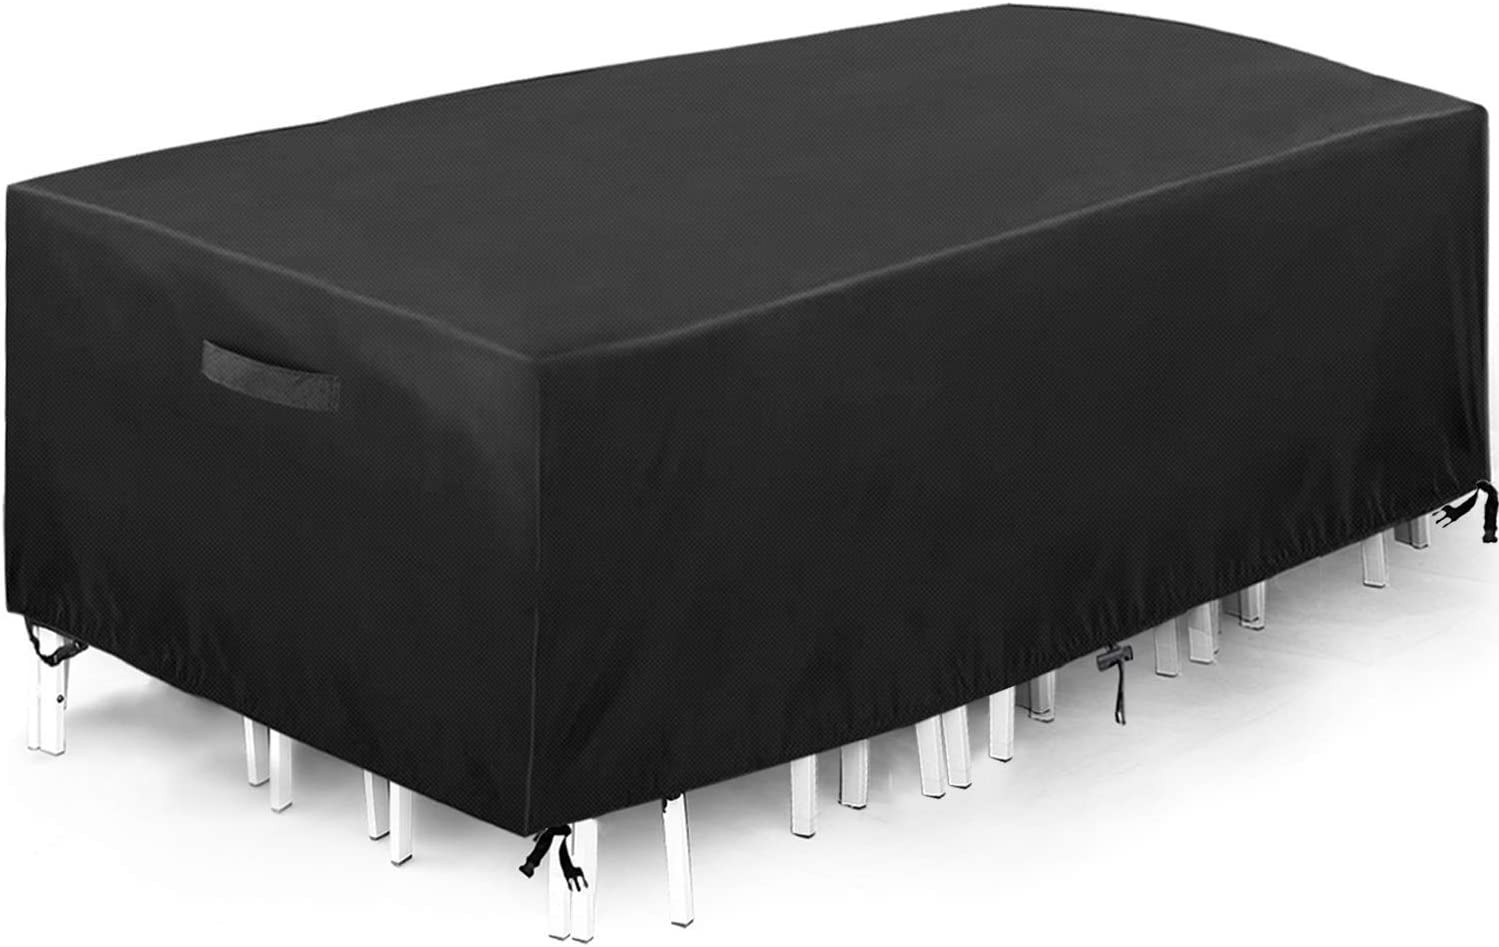 """king do way Outdoor Patio Furniture Cover 230X165X80cm Waterproof Patio Table Covers,Oxford Polyester,Windproof, Anti-UV, Dust Proof Protective Covers, Large Size 90.55""""X64.96"""" X31.49"""""""